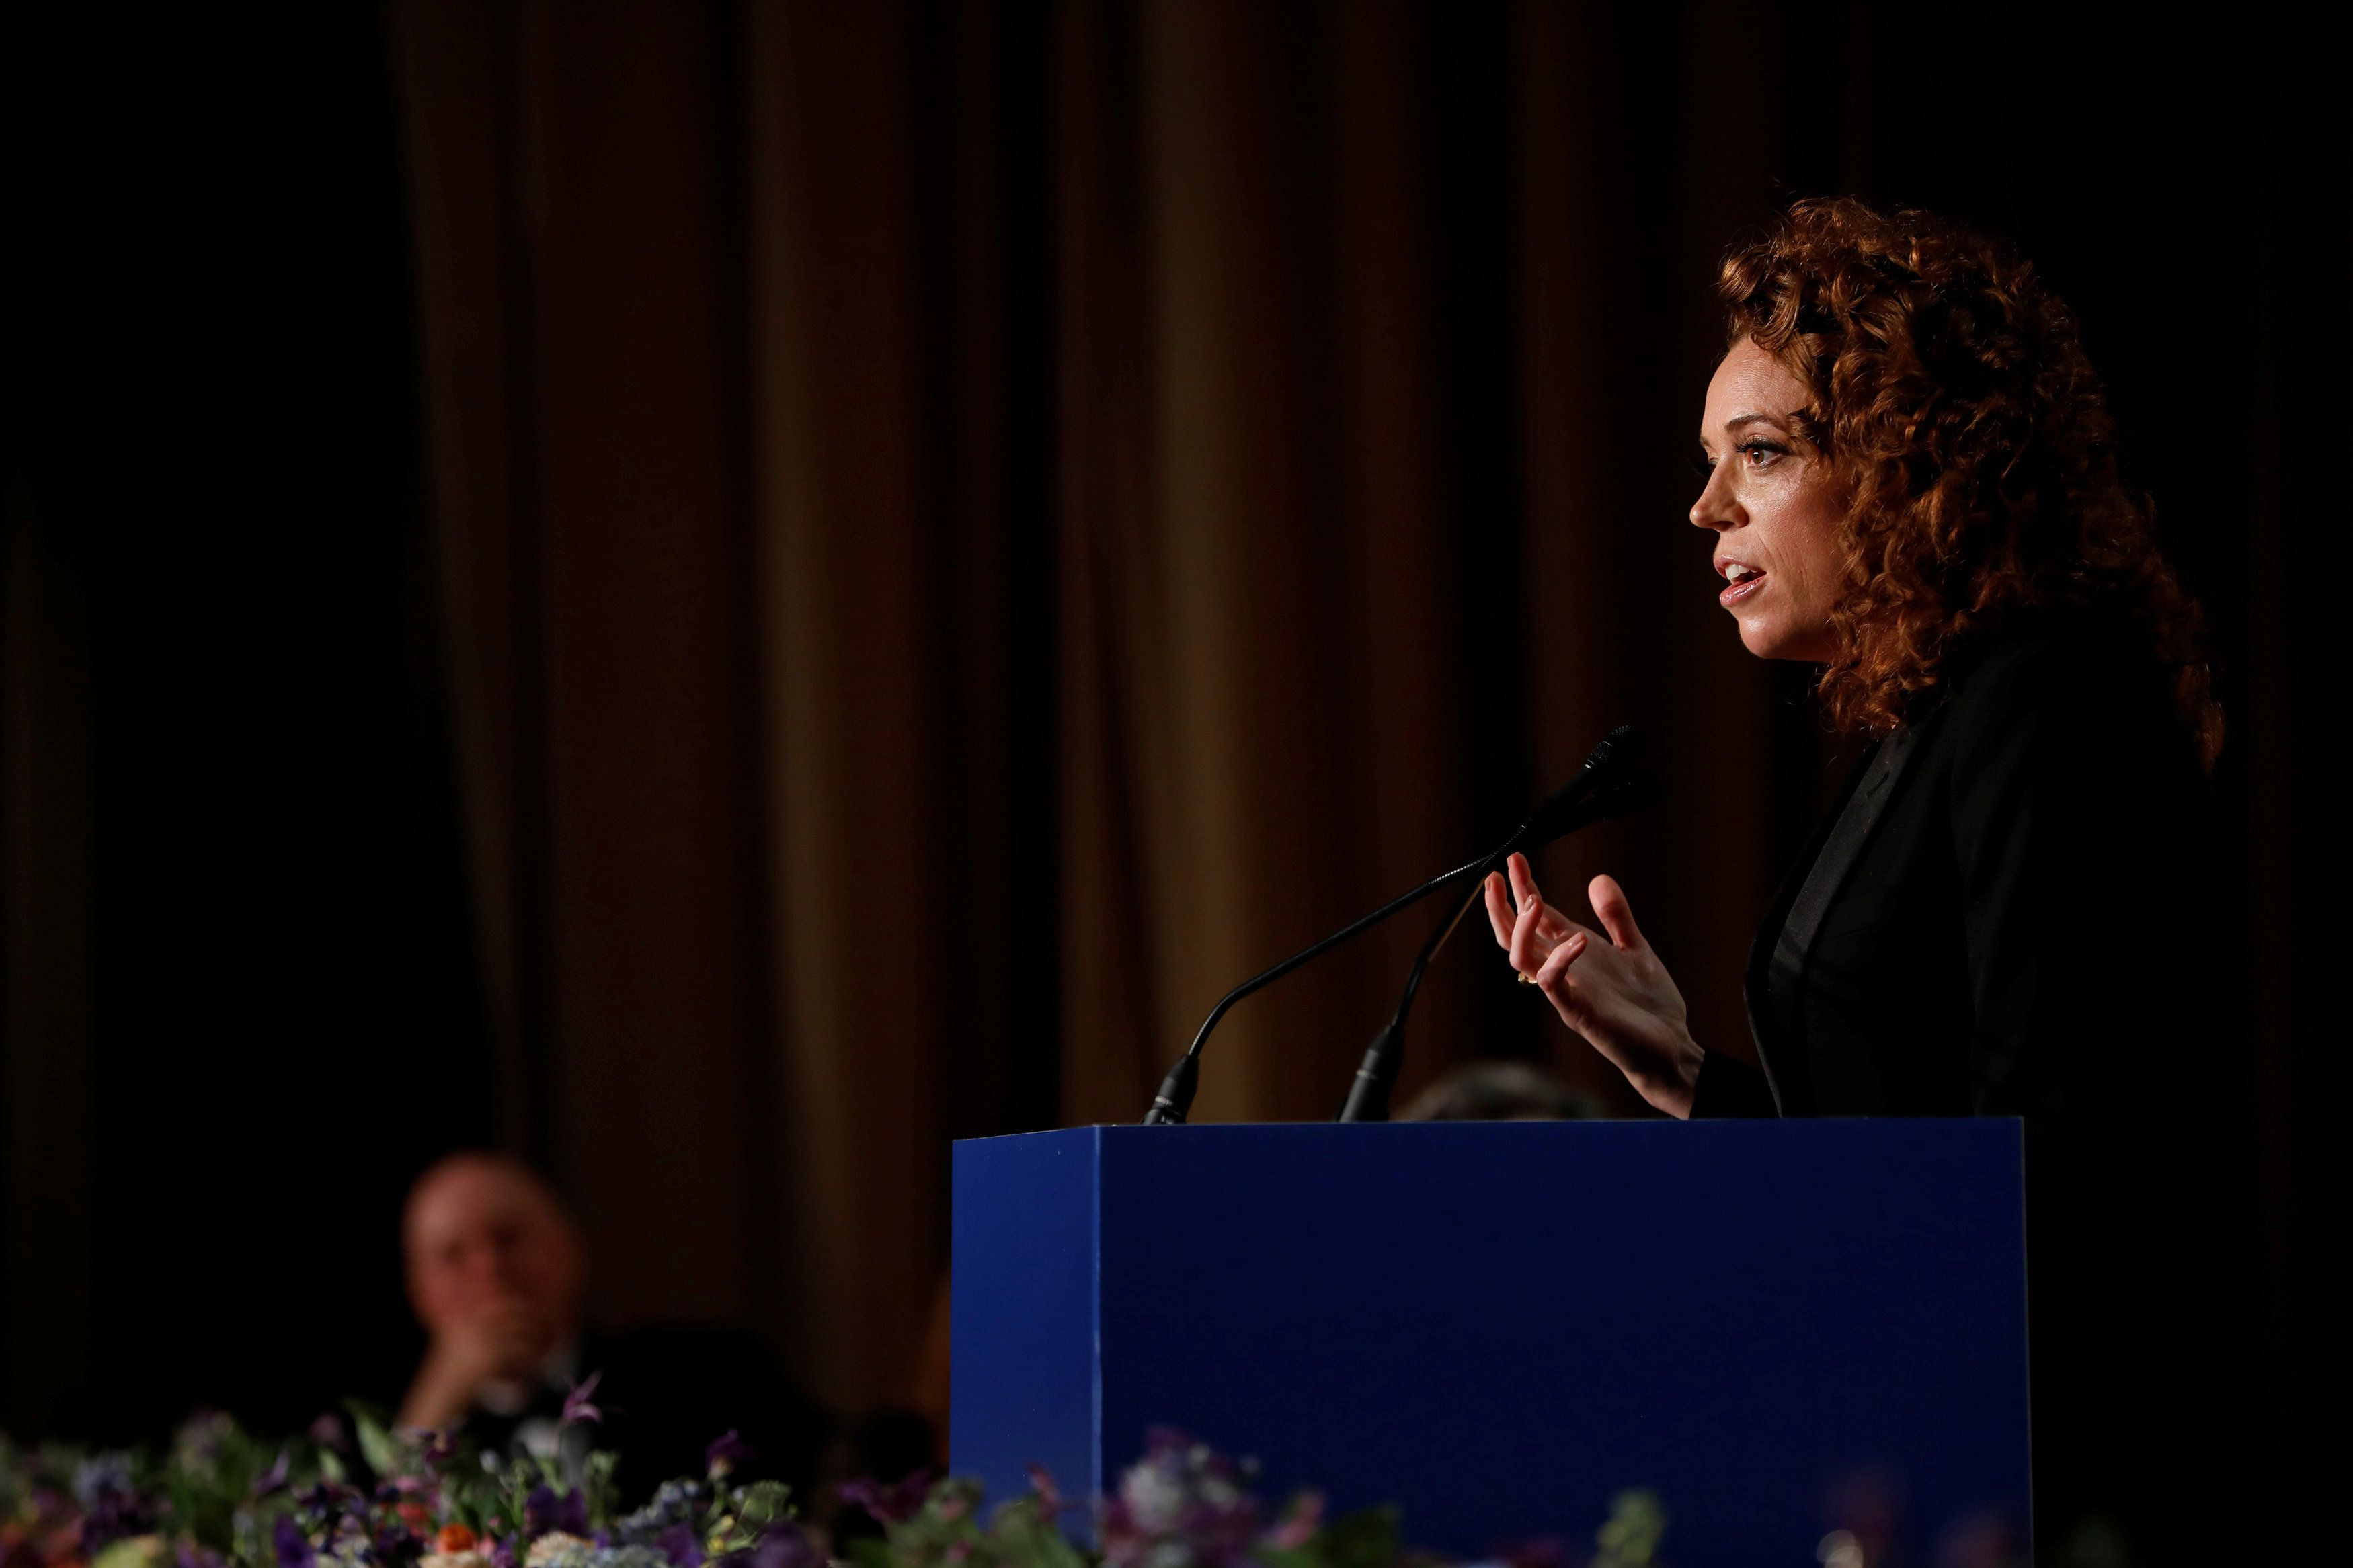 Comedian Michelle Wolf performs at the White House Correspondents' Association dinner in Washington, U.S., April 28, 2018. REUTERS/Aaron P. Bernstein